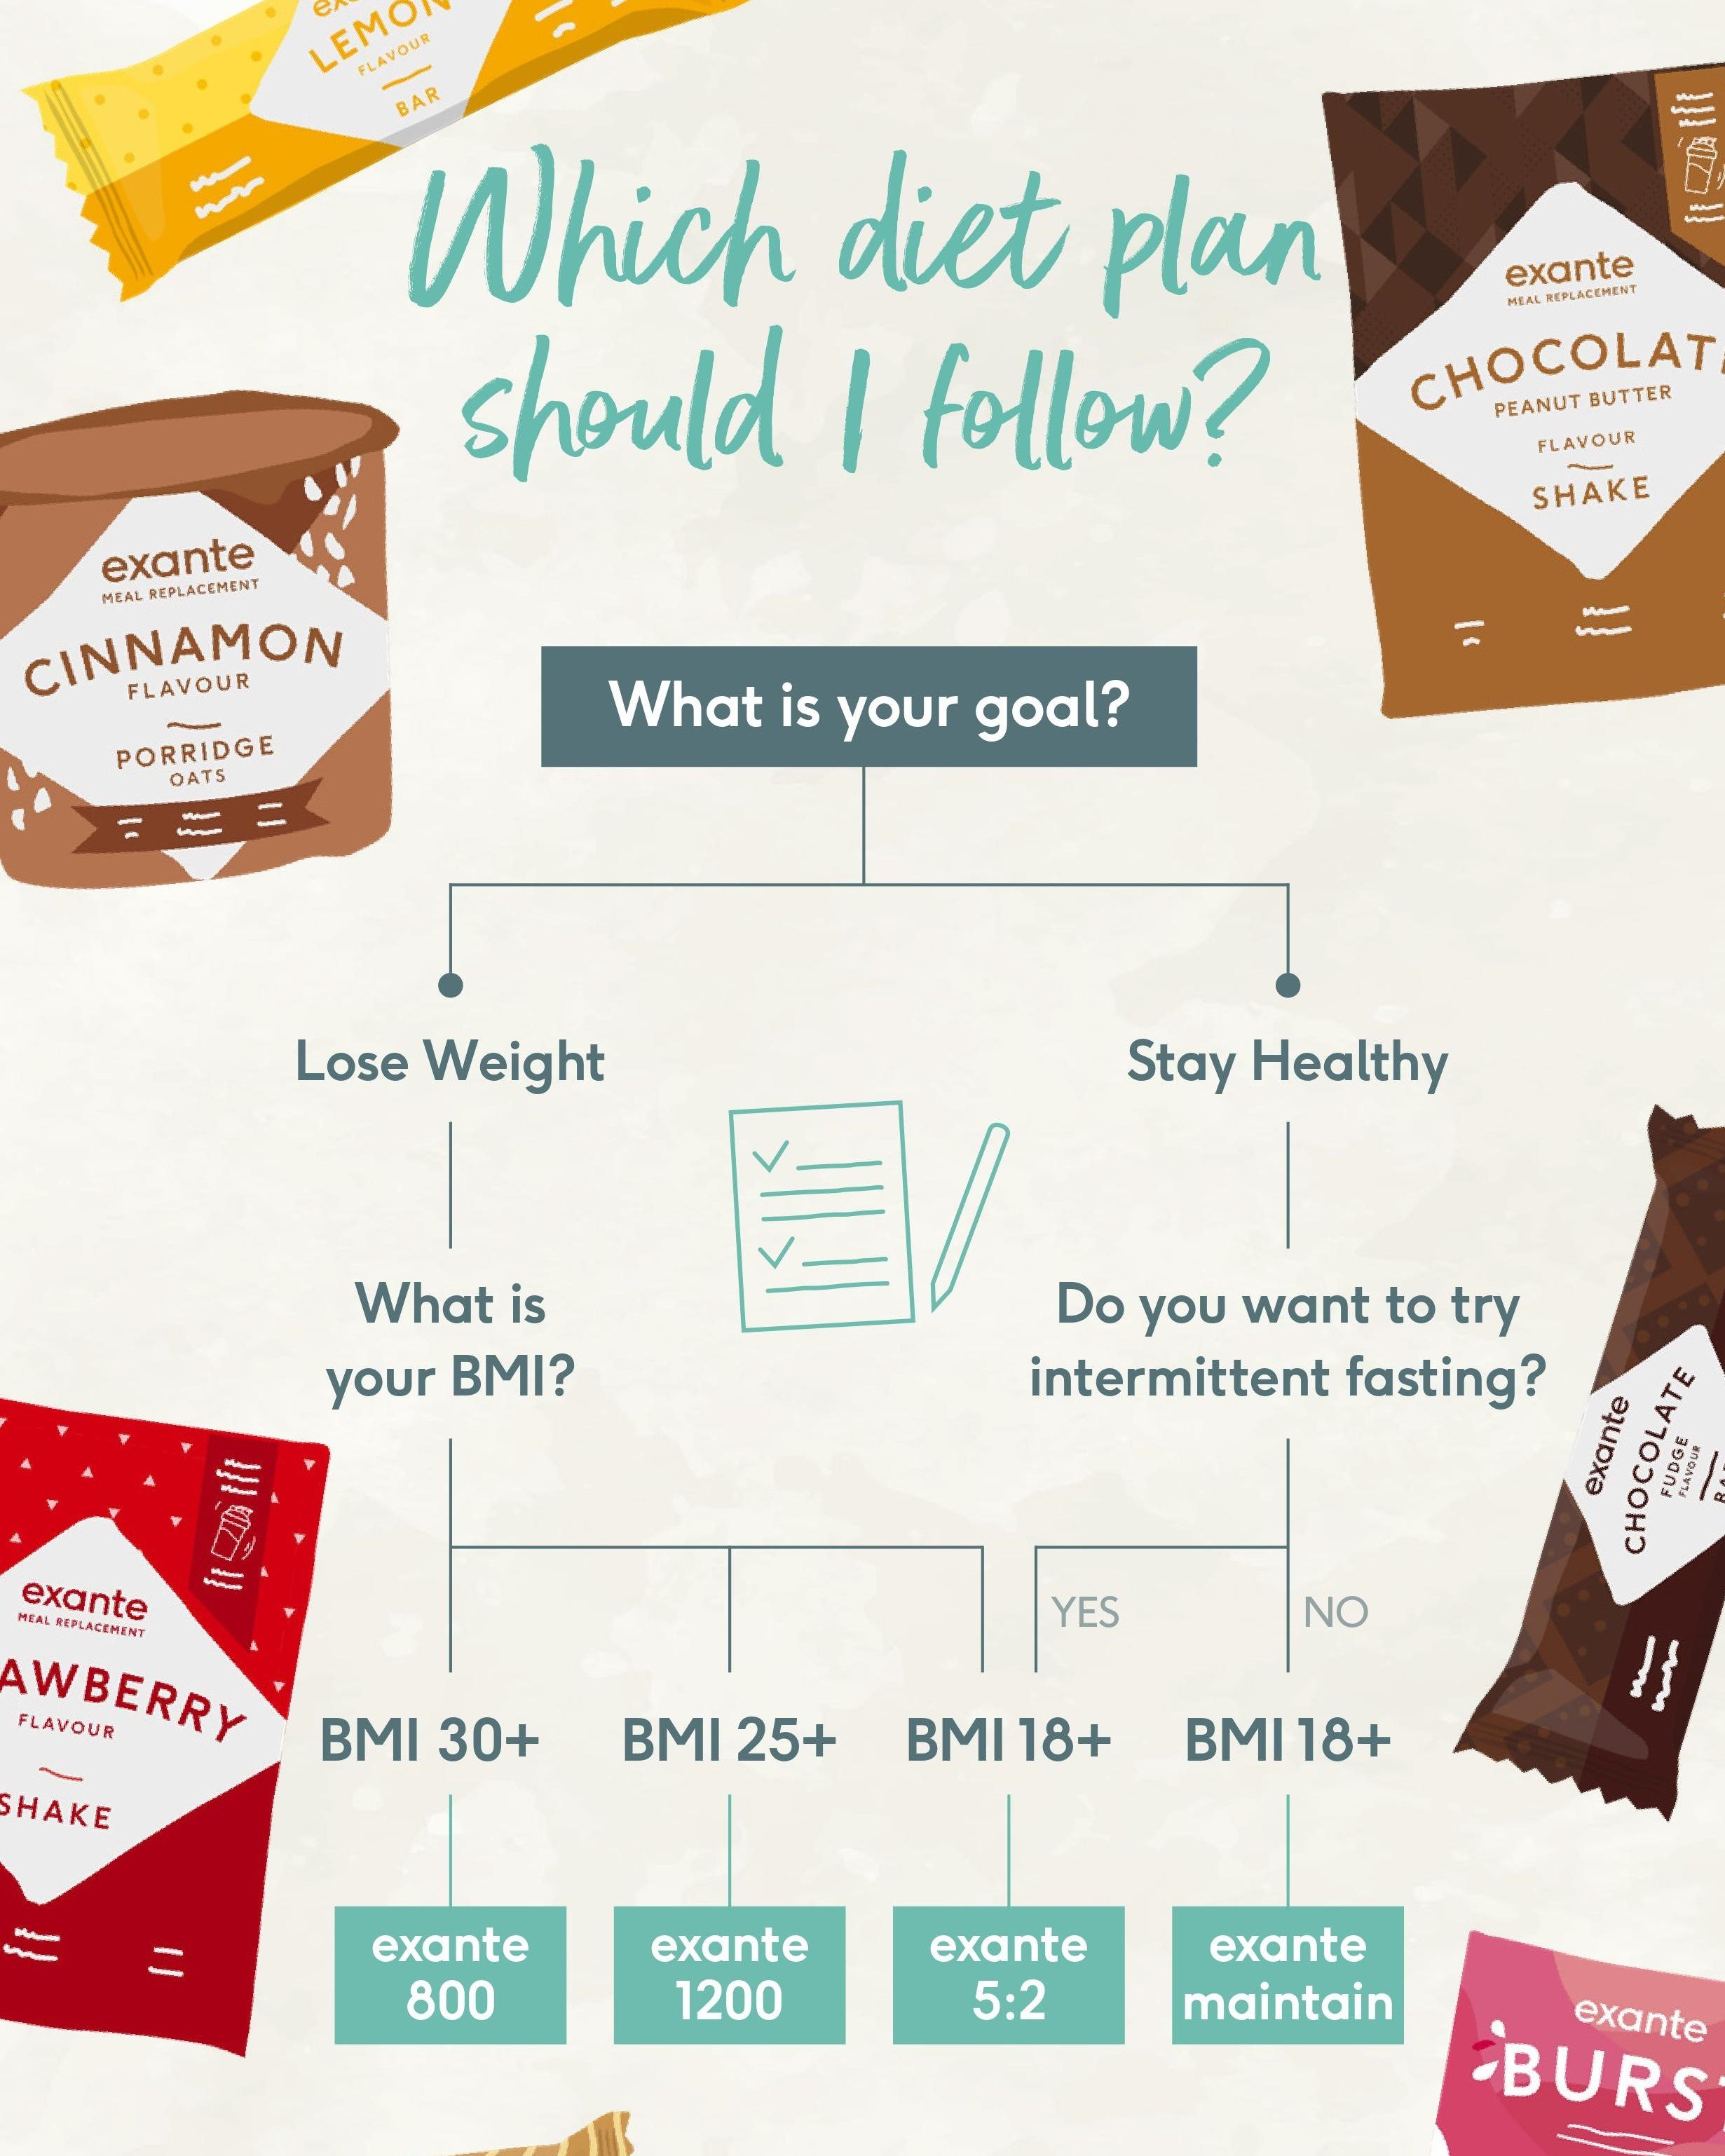 exante-which-diet-plan-should-i-choose-glossybox